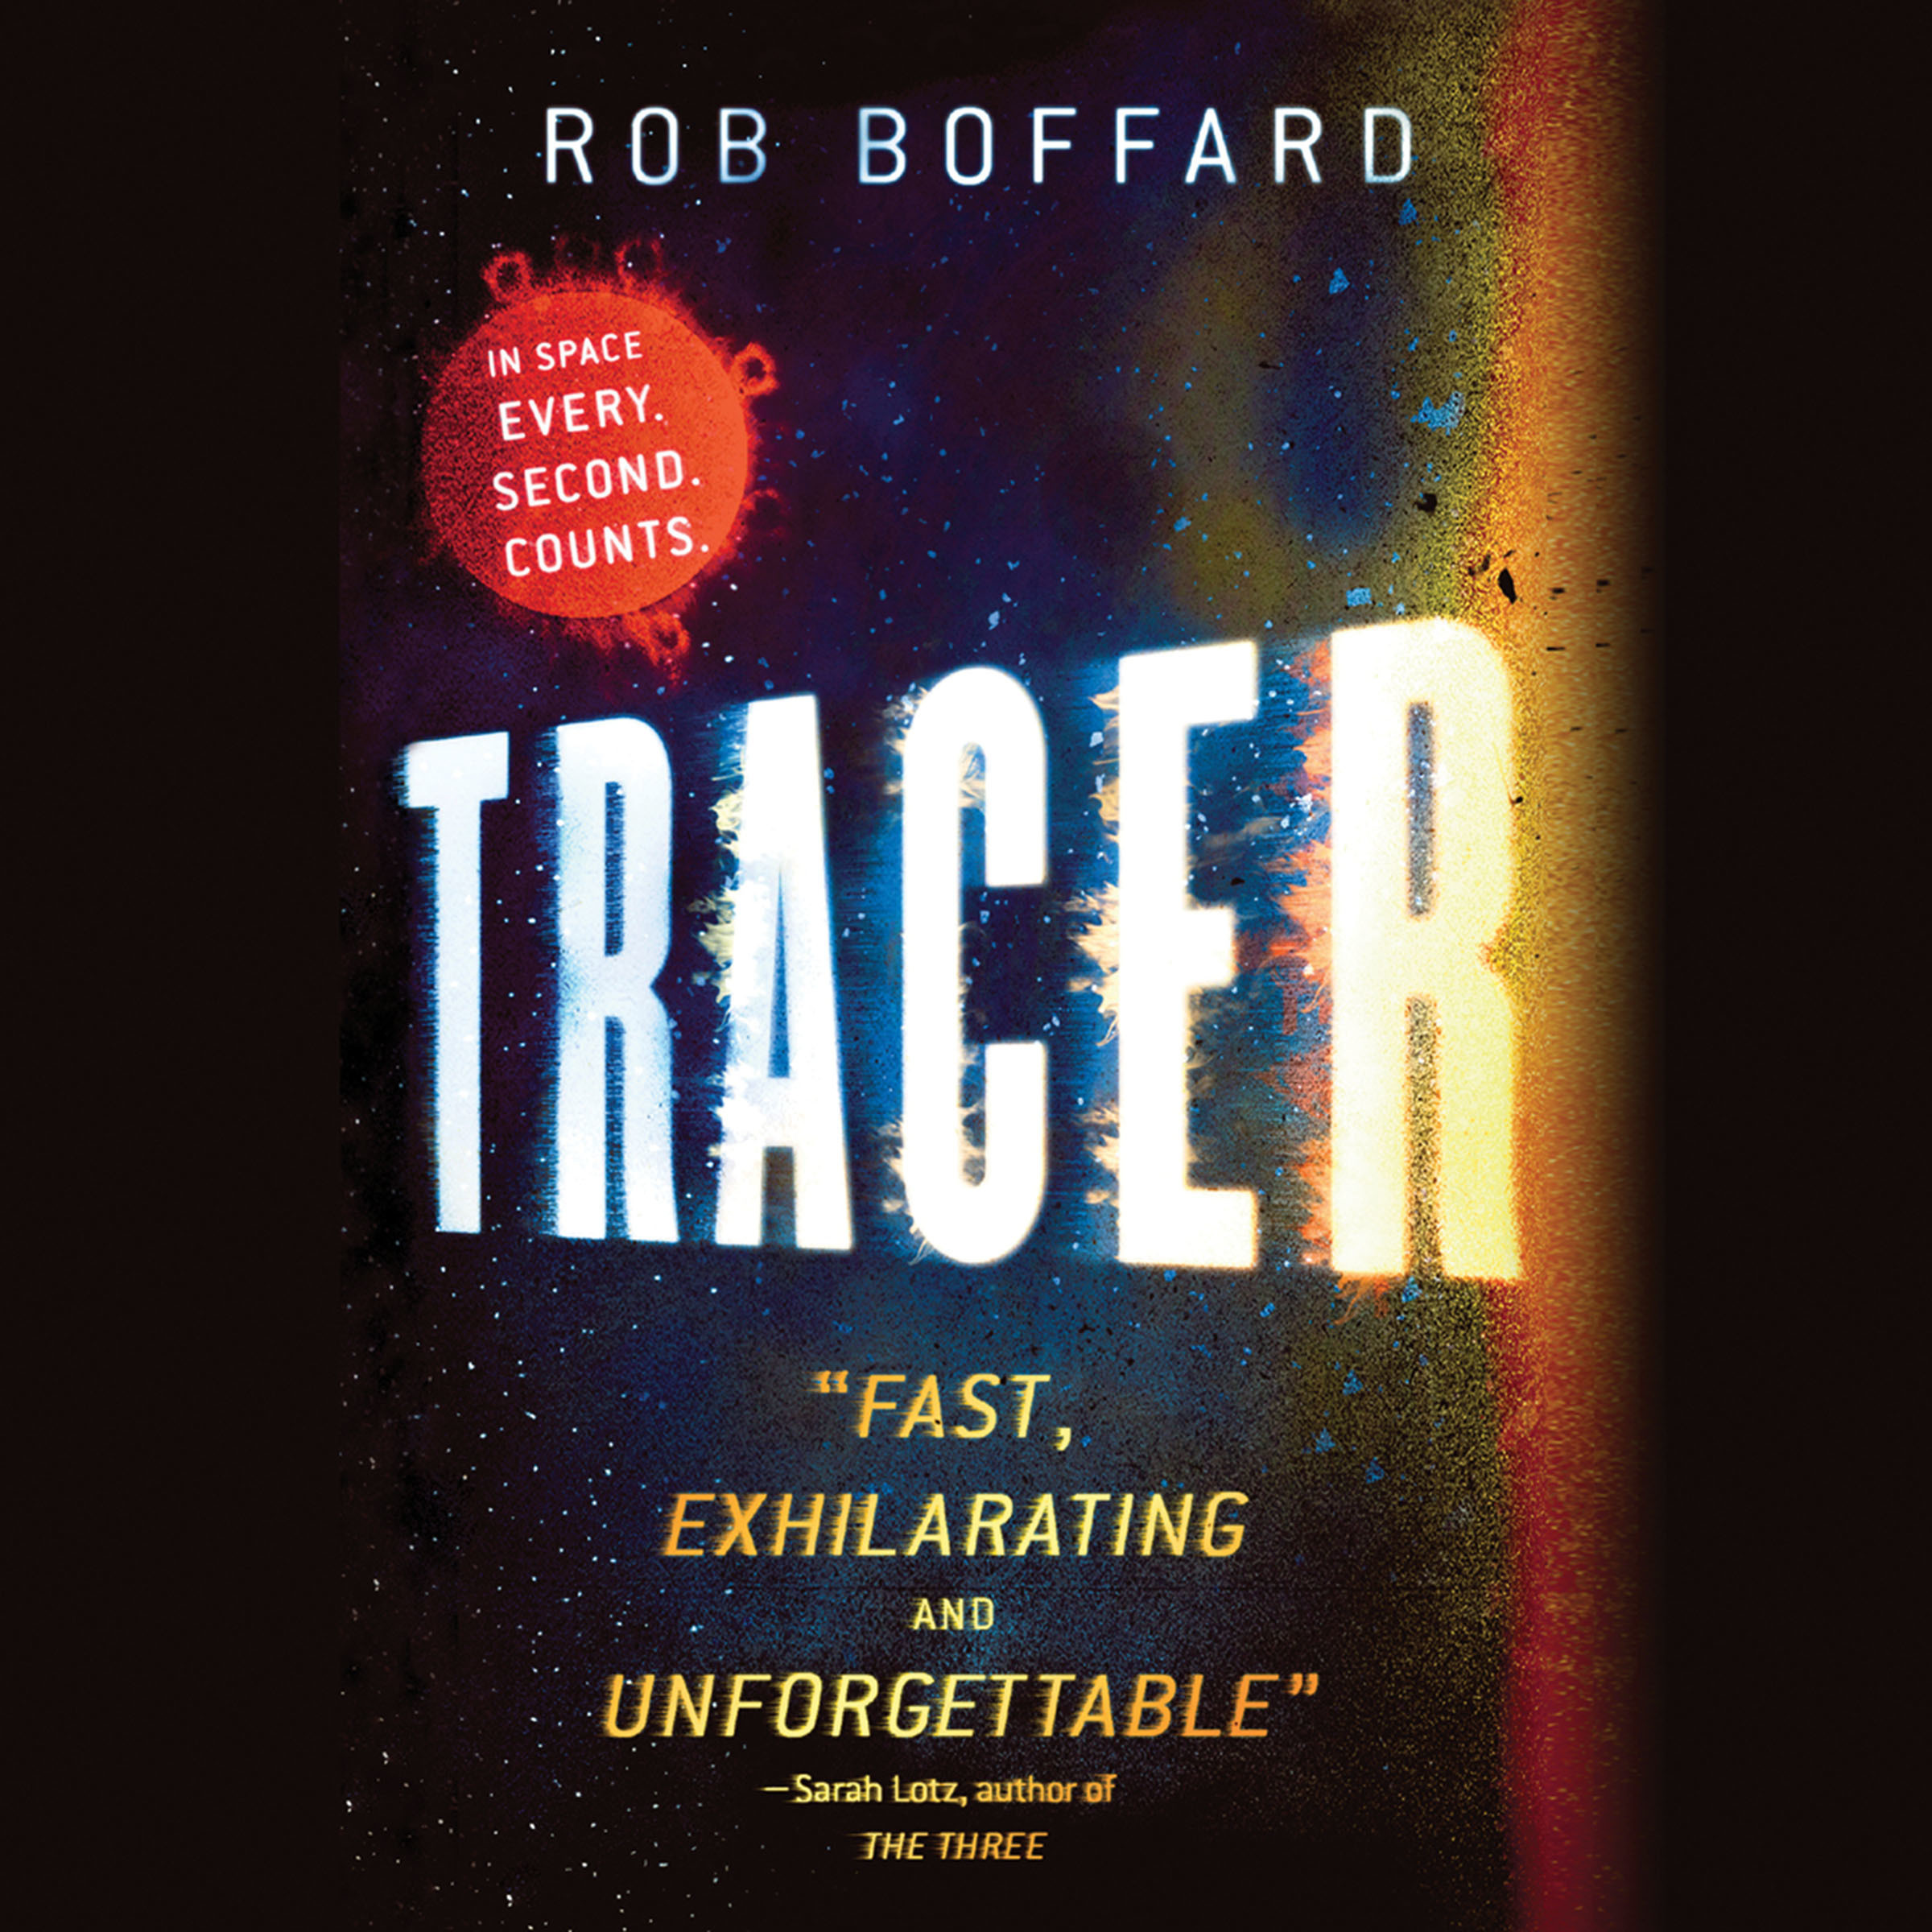 Printable Tracer: A Thriller Set in Space Audiobook Cover Art